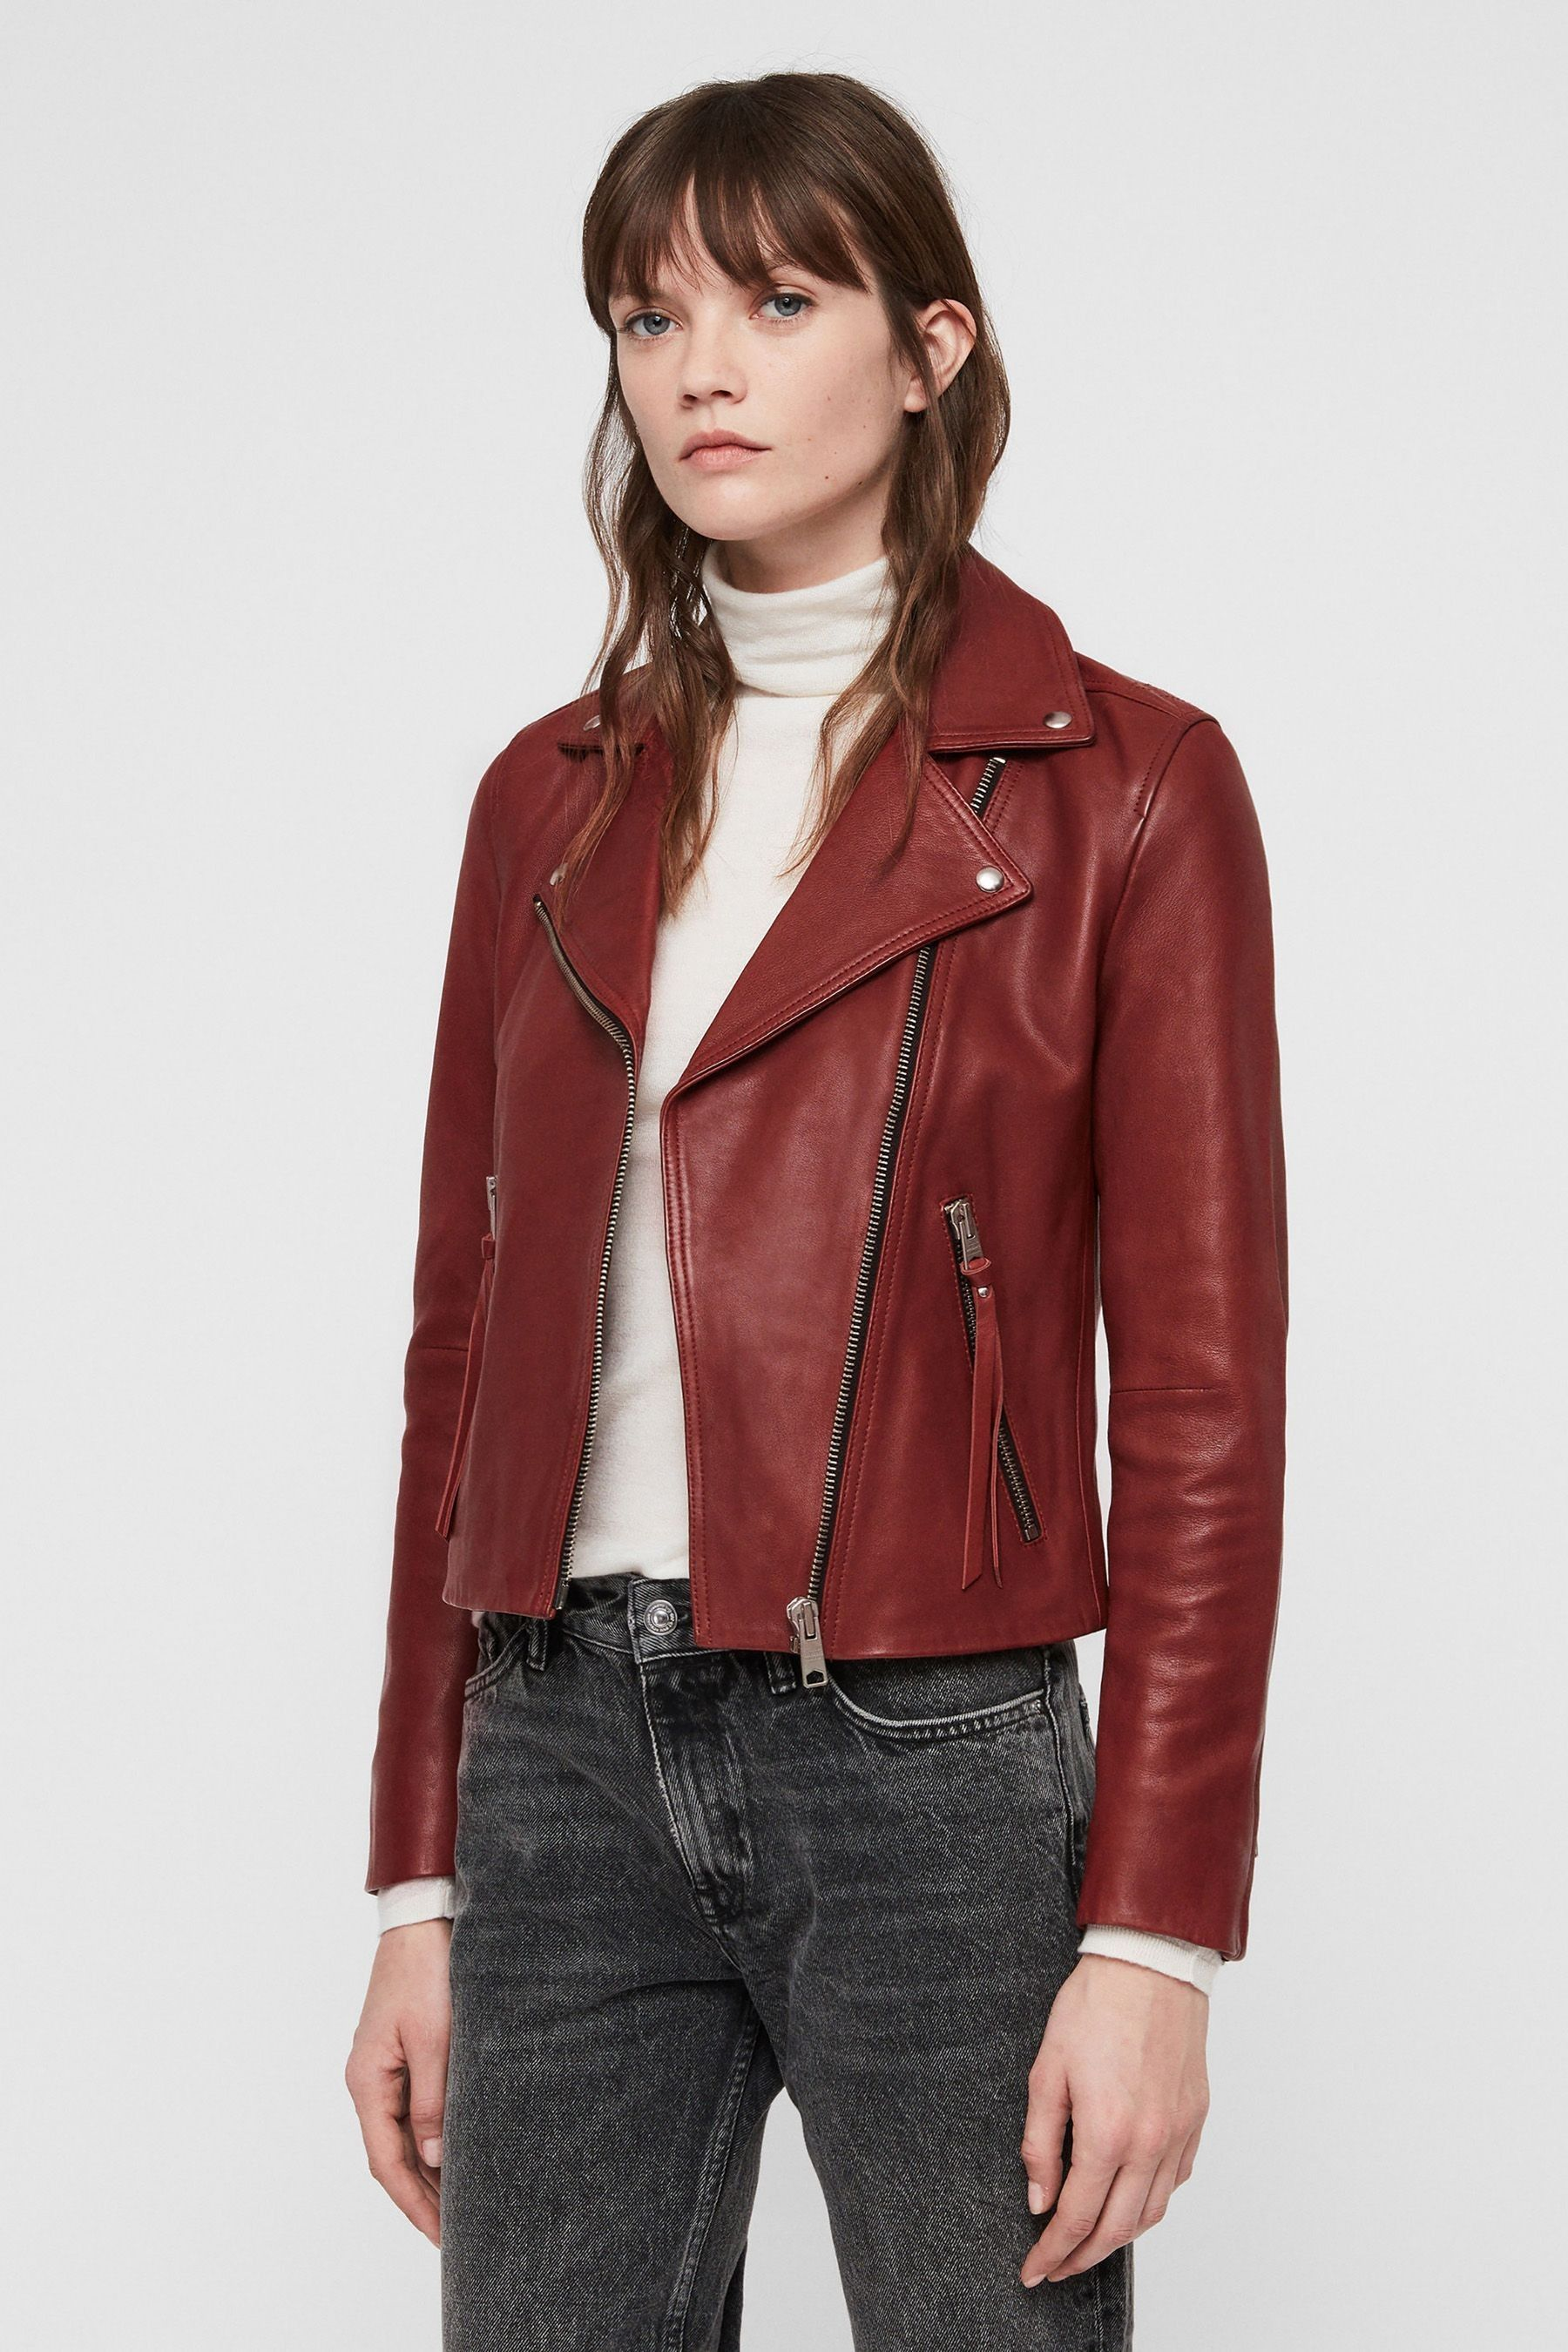 deb34ca29 Womens AllSaints Dalby Leather Biker Jacket - Black in 2019 ...